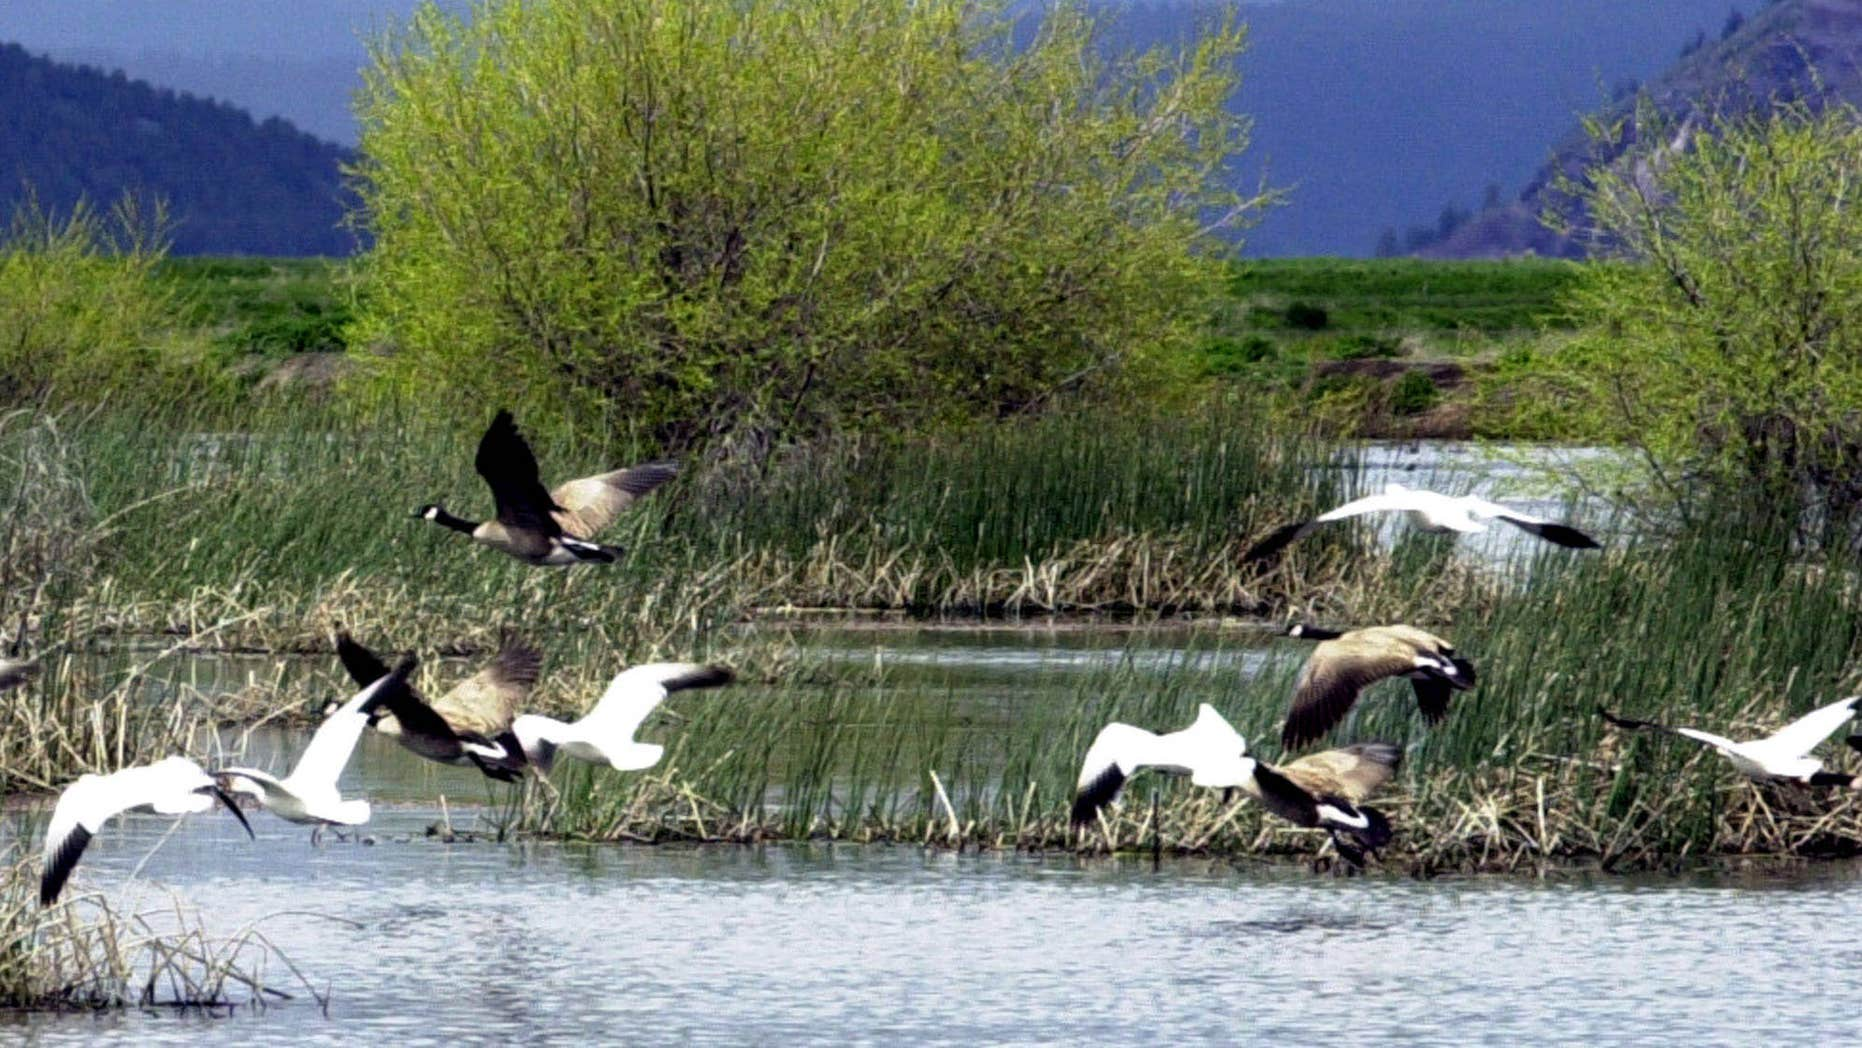 May 9, 2005: Snow geese and Canada geese preparing to land on marsh at the Lower Klamath National Wildlife Refuge near Merrill, Ore.